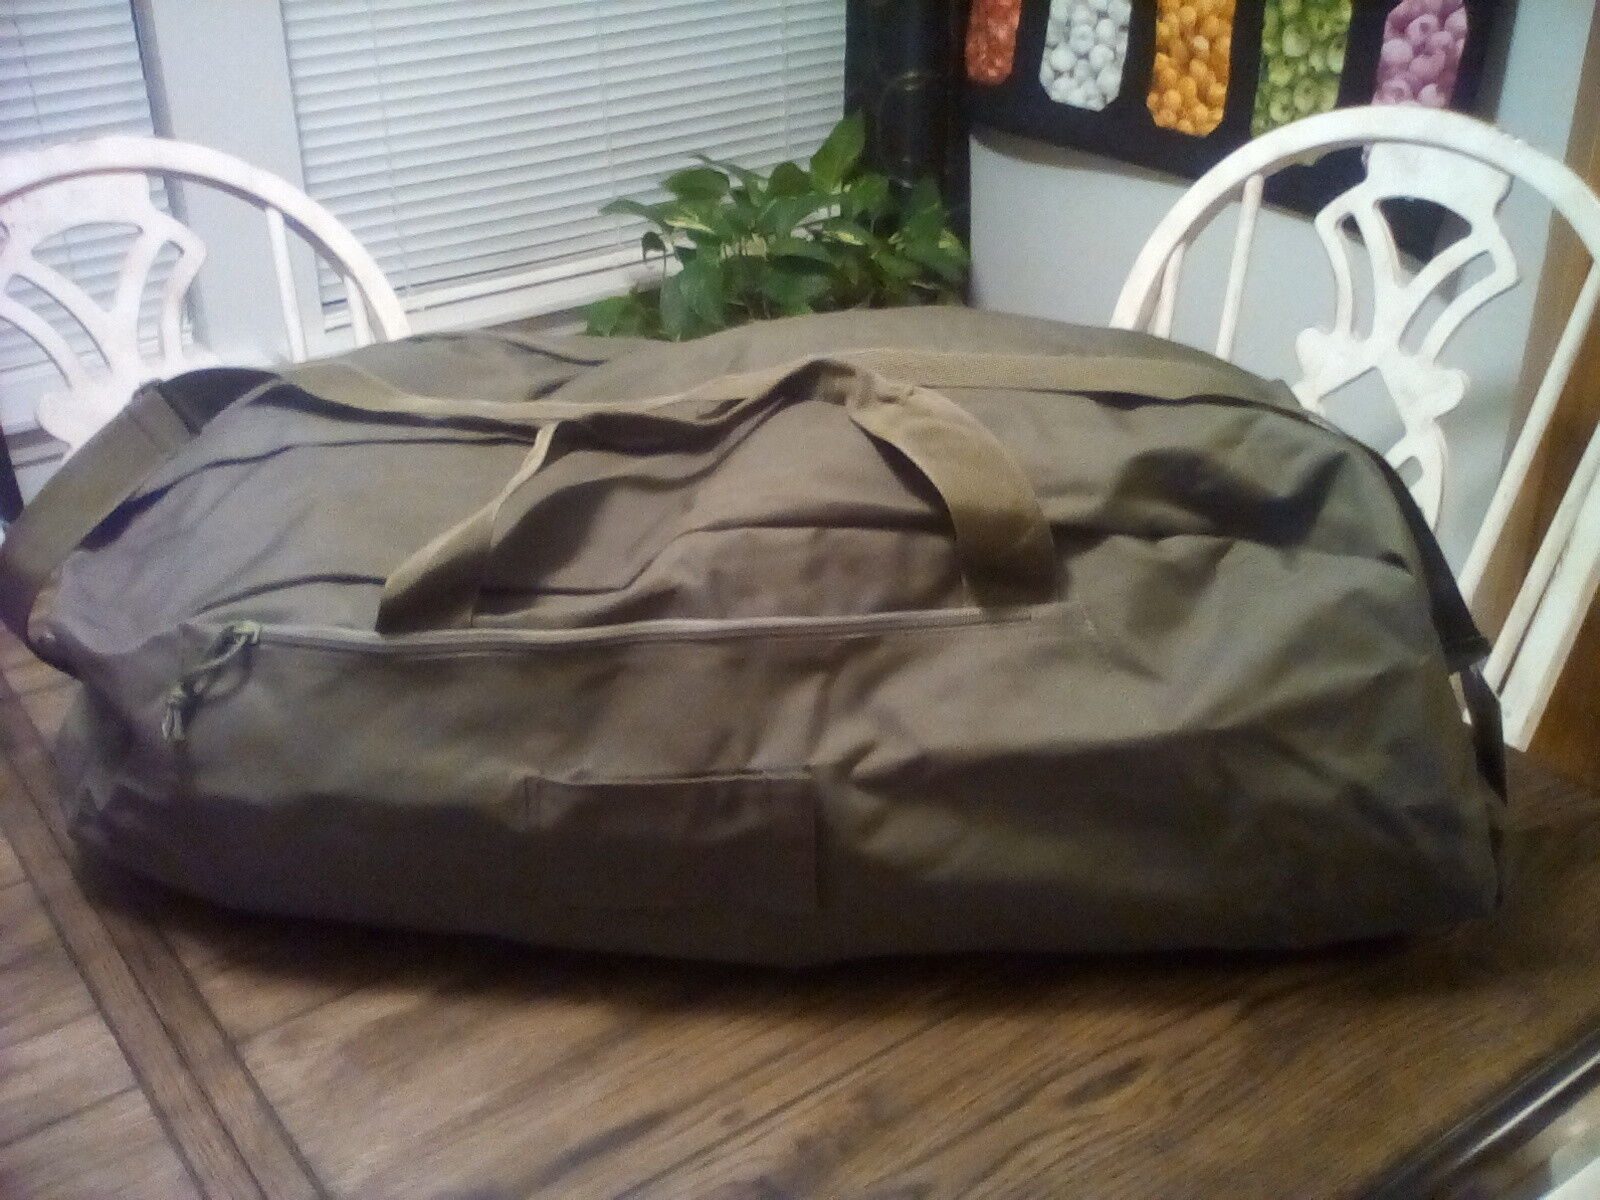 5ive Star Gear Large Tactical Duffel Bag, LDB-5S, 30x13x10 made of heavy canvas